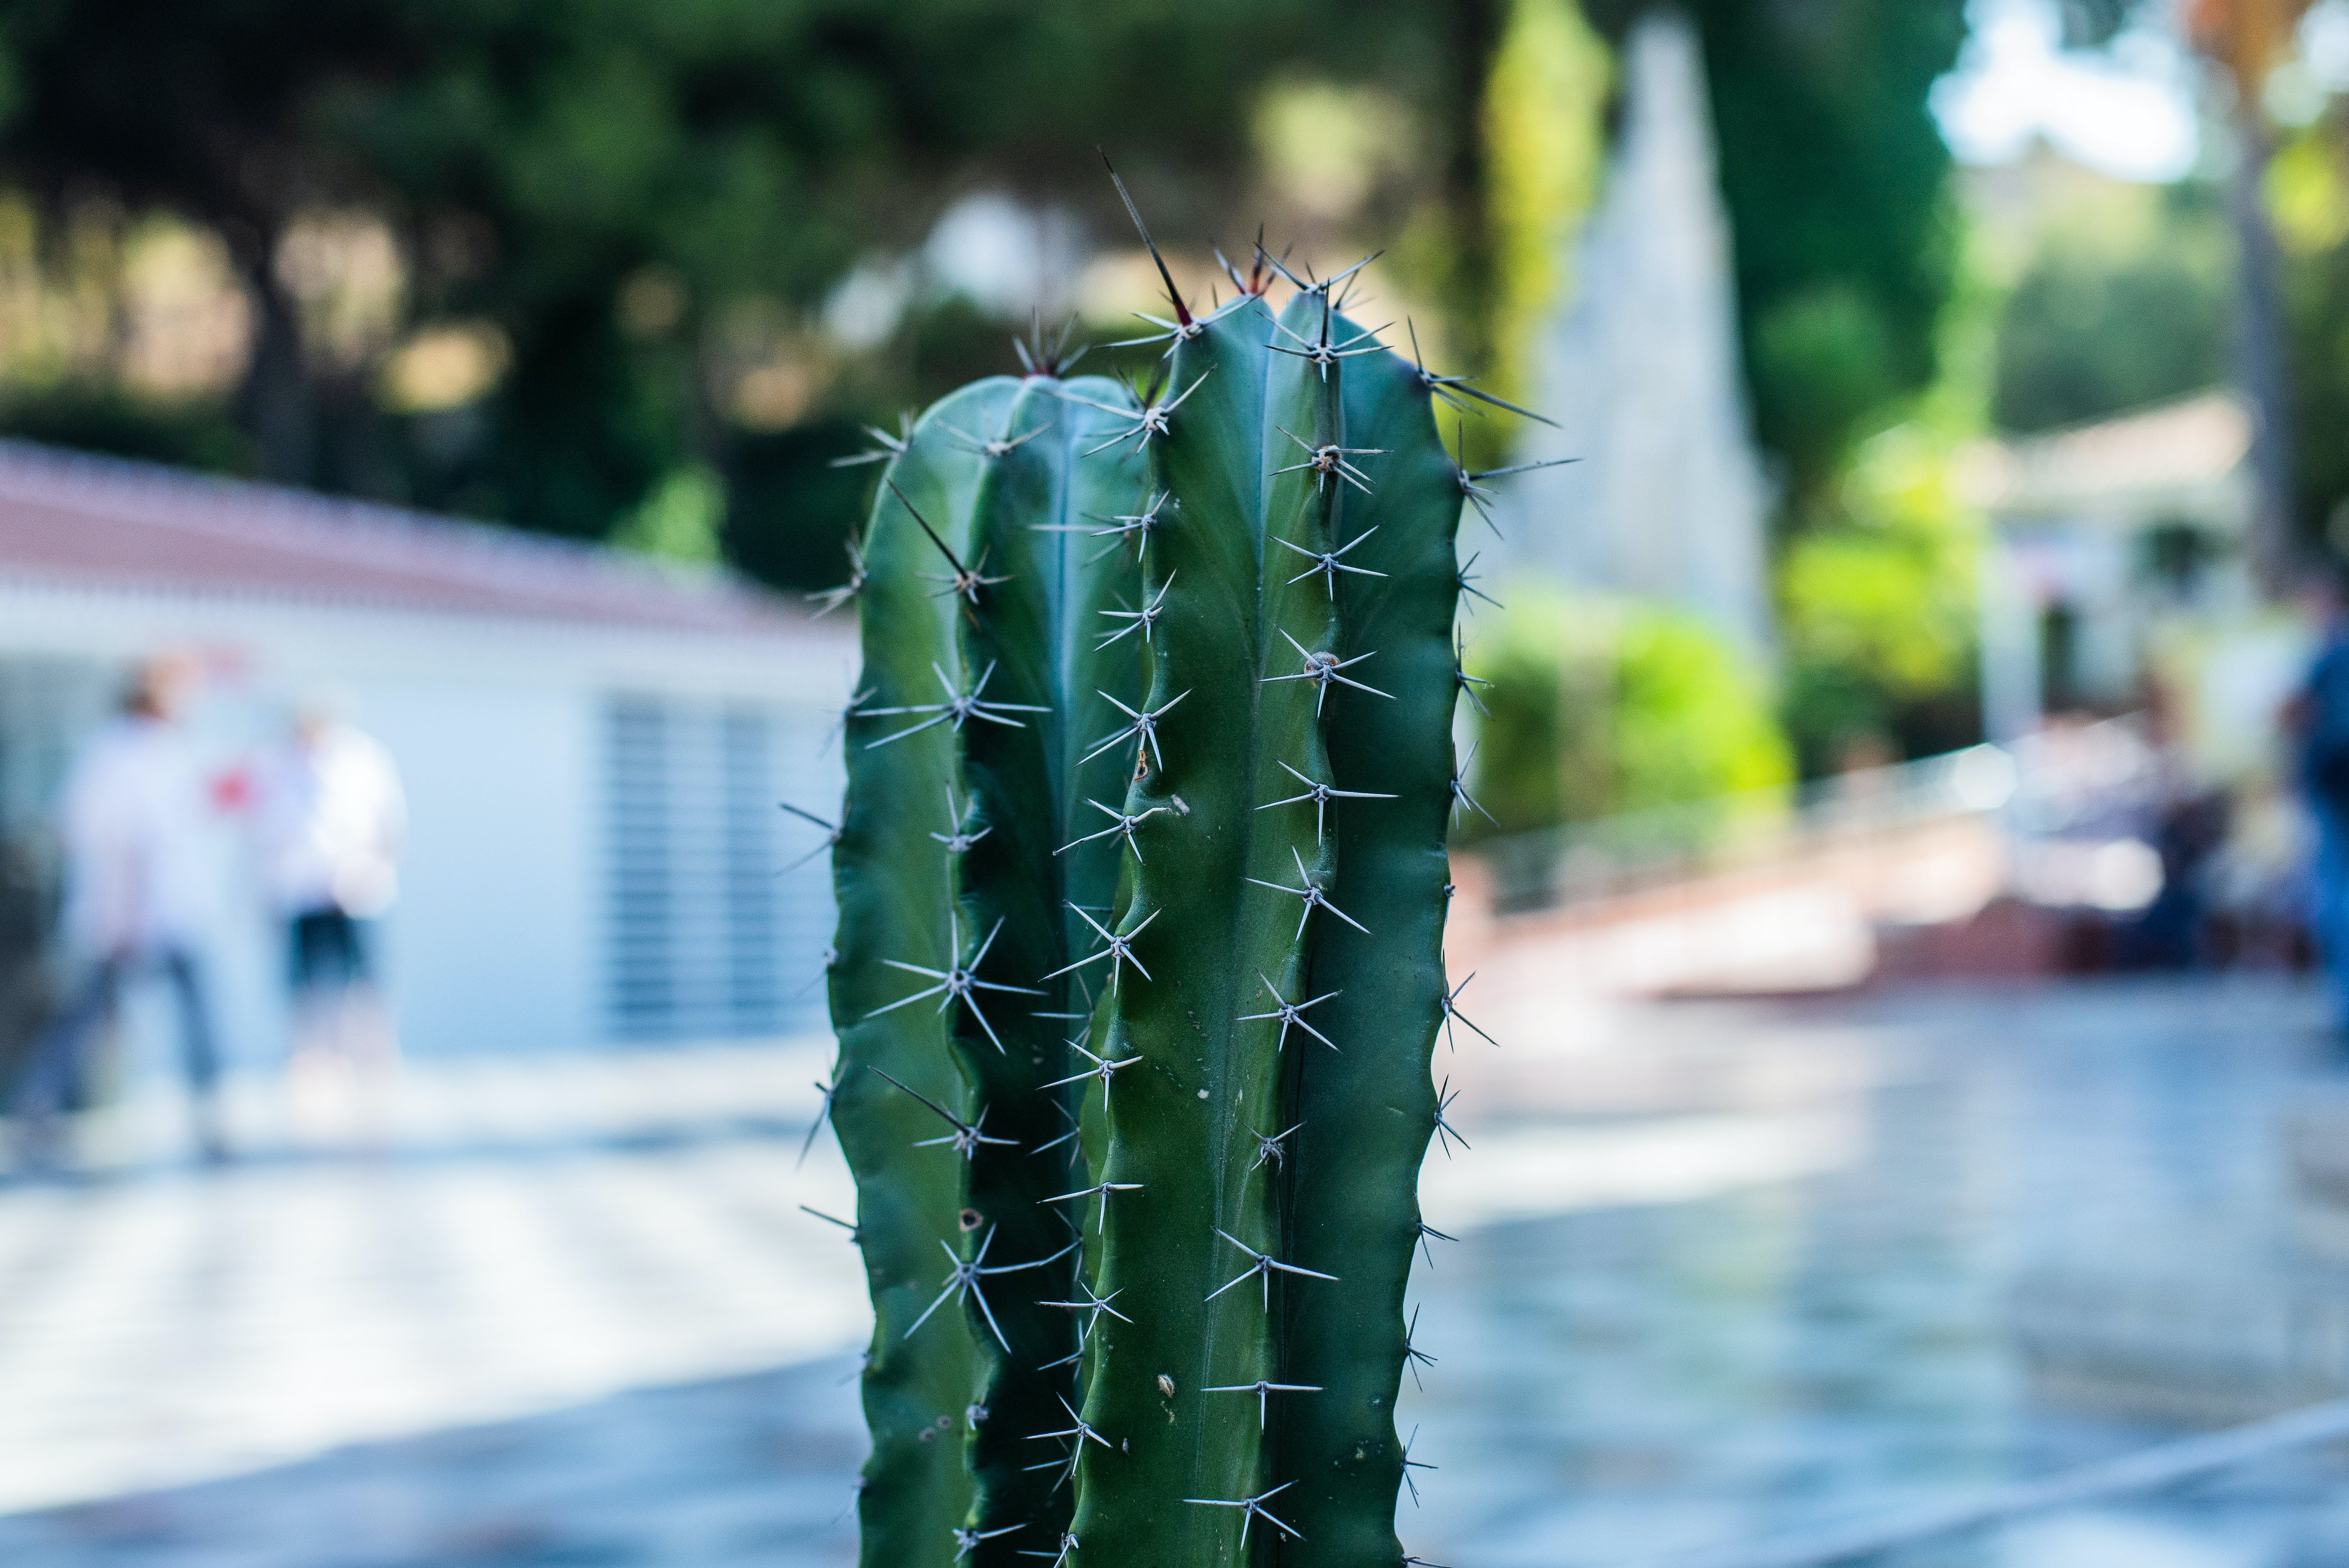 Free stock photo of blurred background, cactus, nature, summer